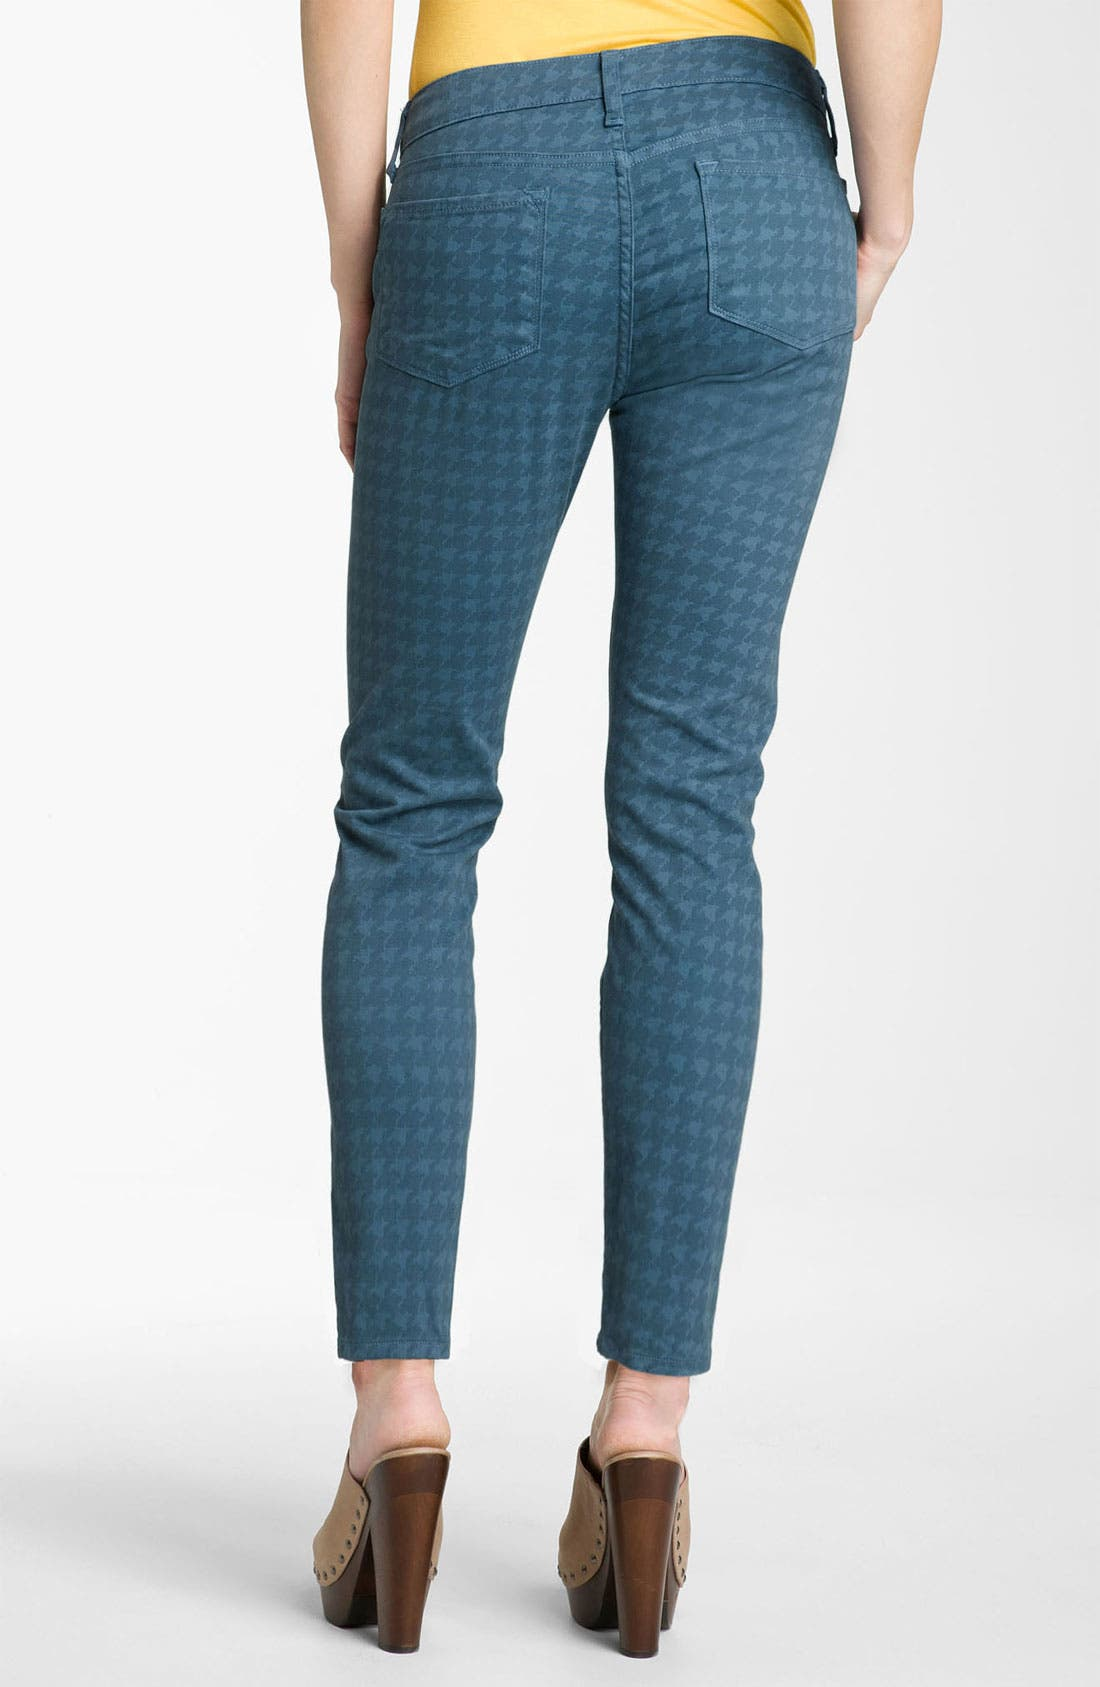 Alternate Image 2  - Blue Essence Houndstooth Twill Ankle Jeans (Petite)